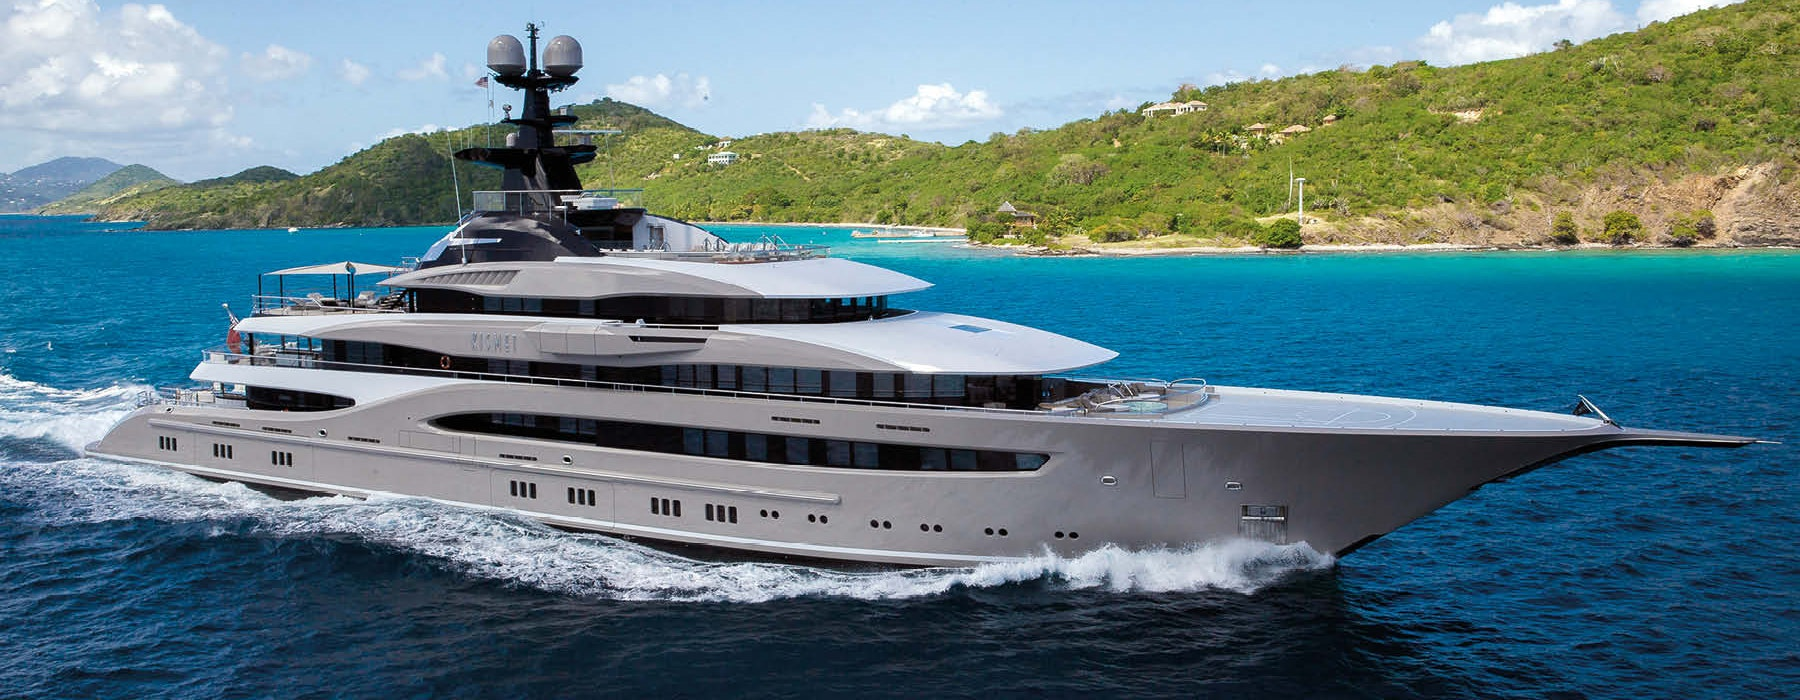 Kismet Lurssen luxury yacht NEW CA FOR SALE